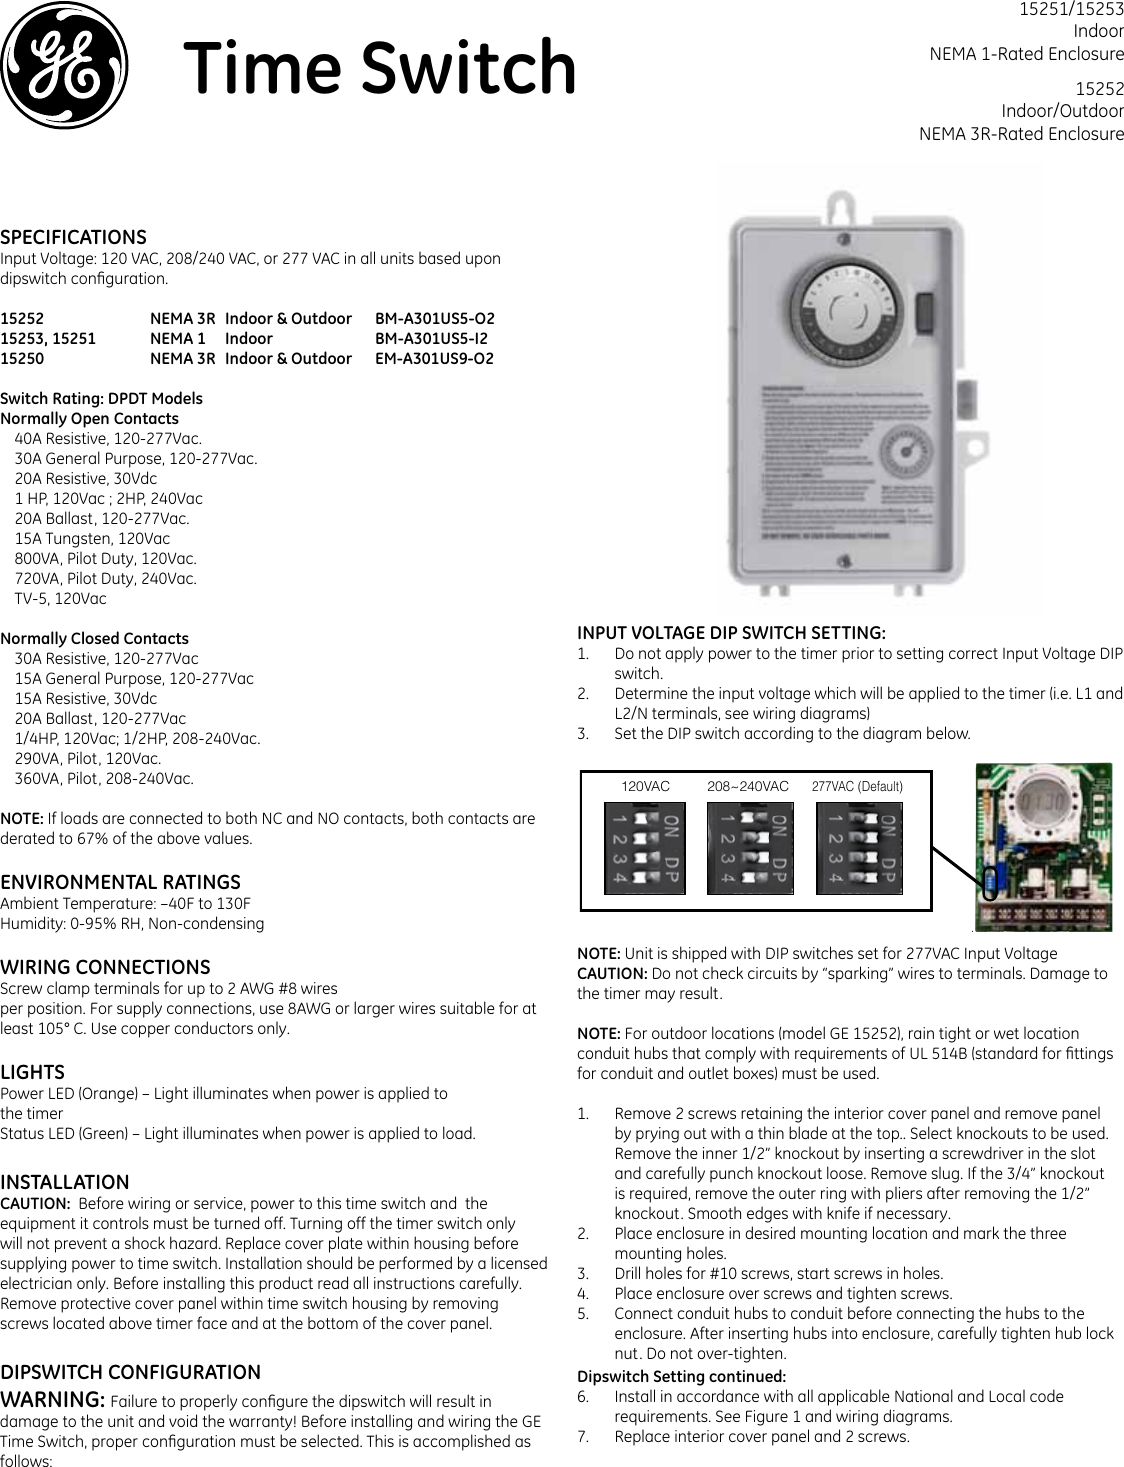 Ge Appliances Boxtimer Time Switch 15251 15252 And 15253 Quick Start Wiring Diagram Spdt Dip Configuration Guide